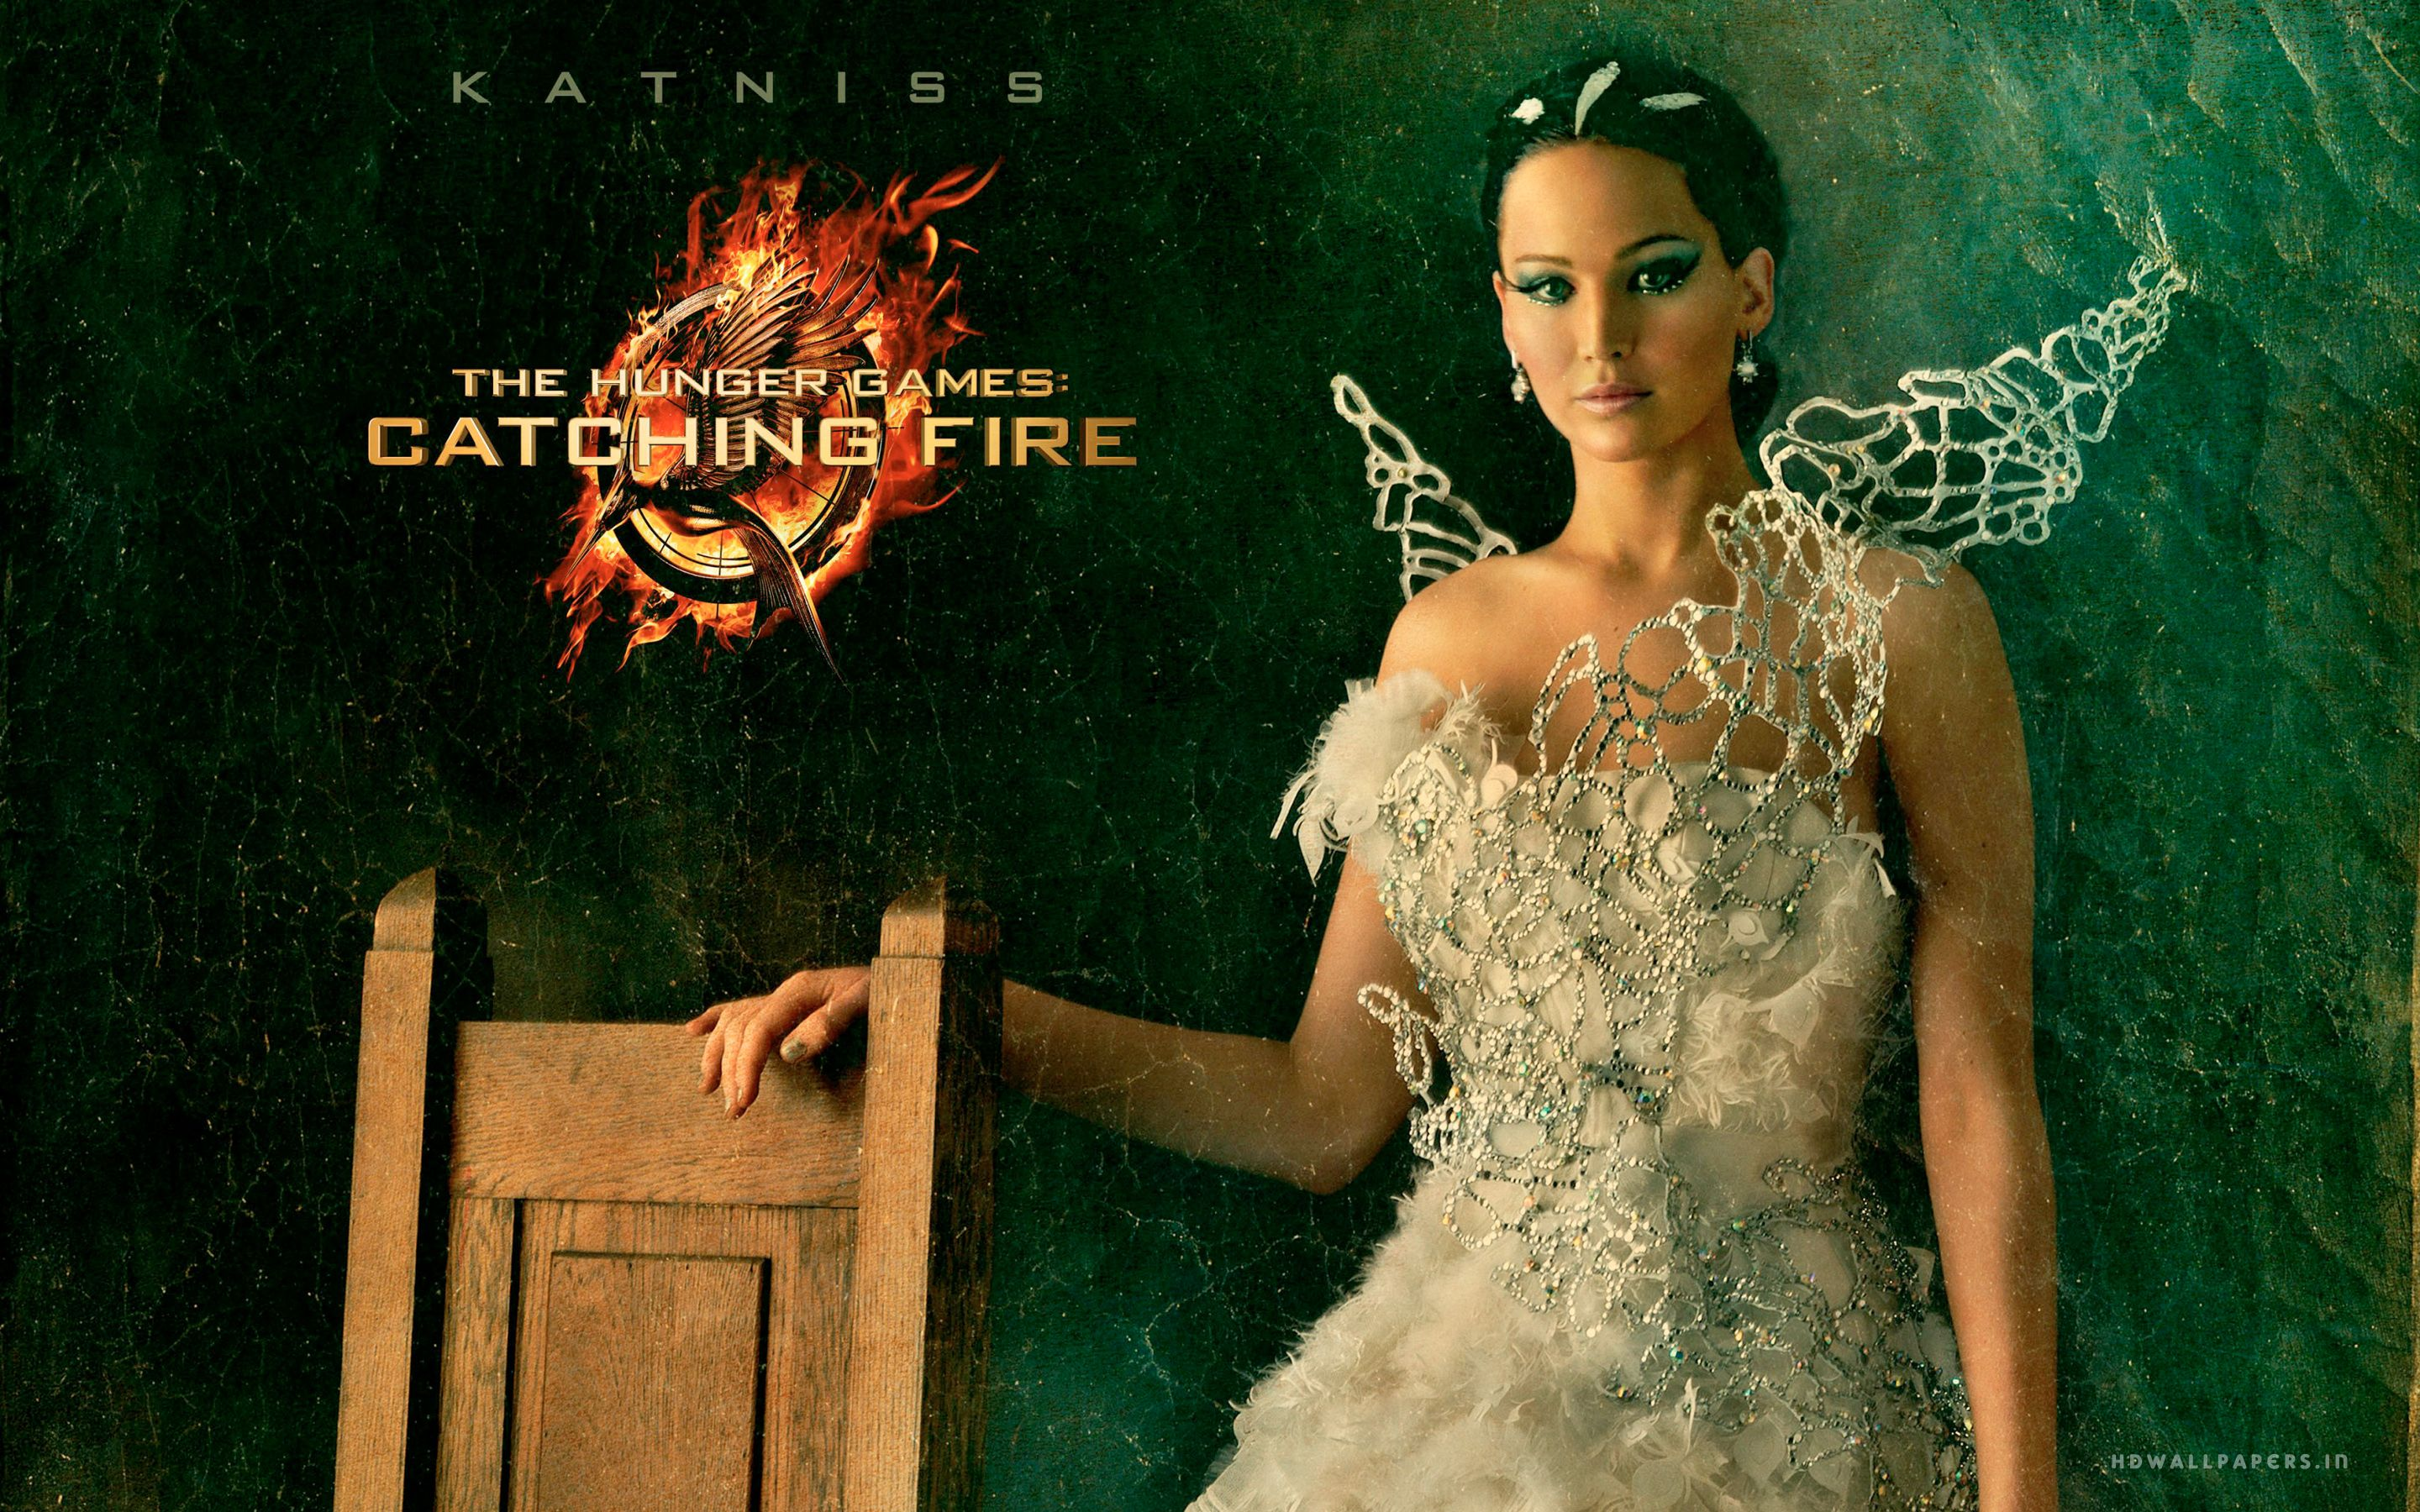 The hunger games catching fire katniss wedding dress designer - Hunger Games Computer Wallpaper Katniss Hunger Games Catching Fire Wallpaper Hd Wallcapture Com